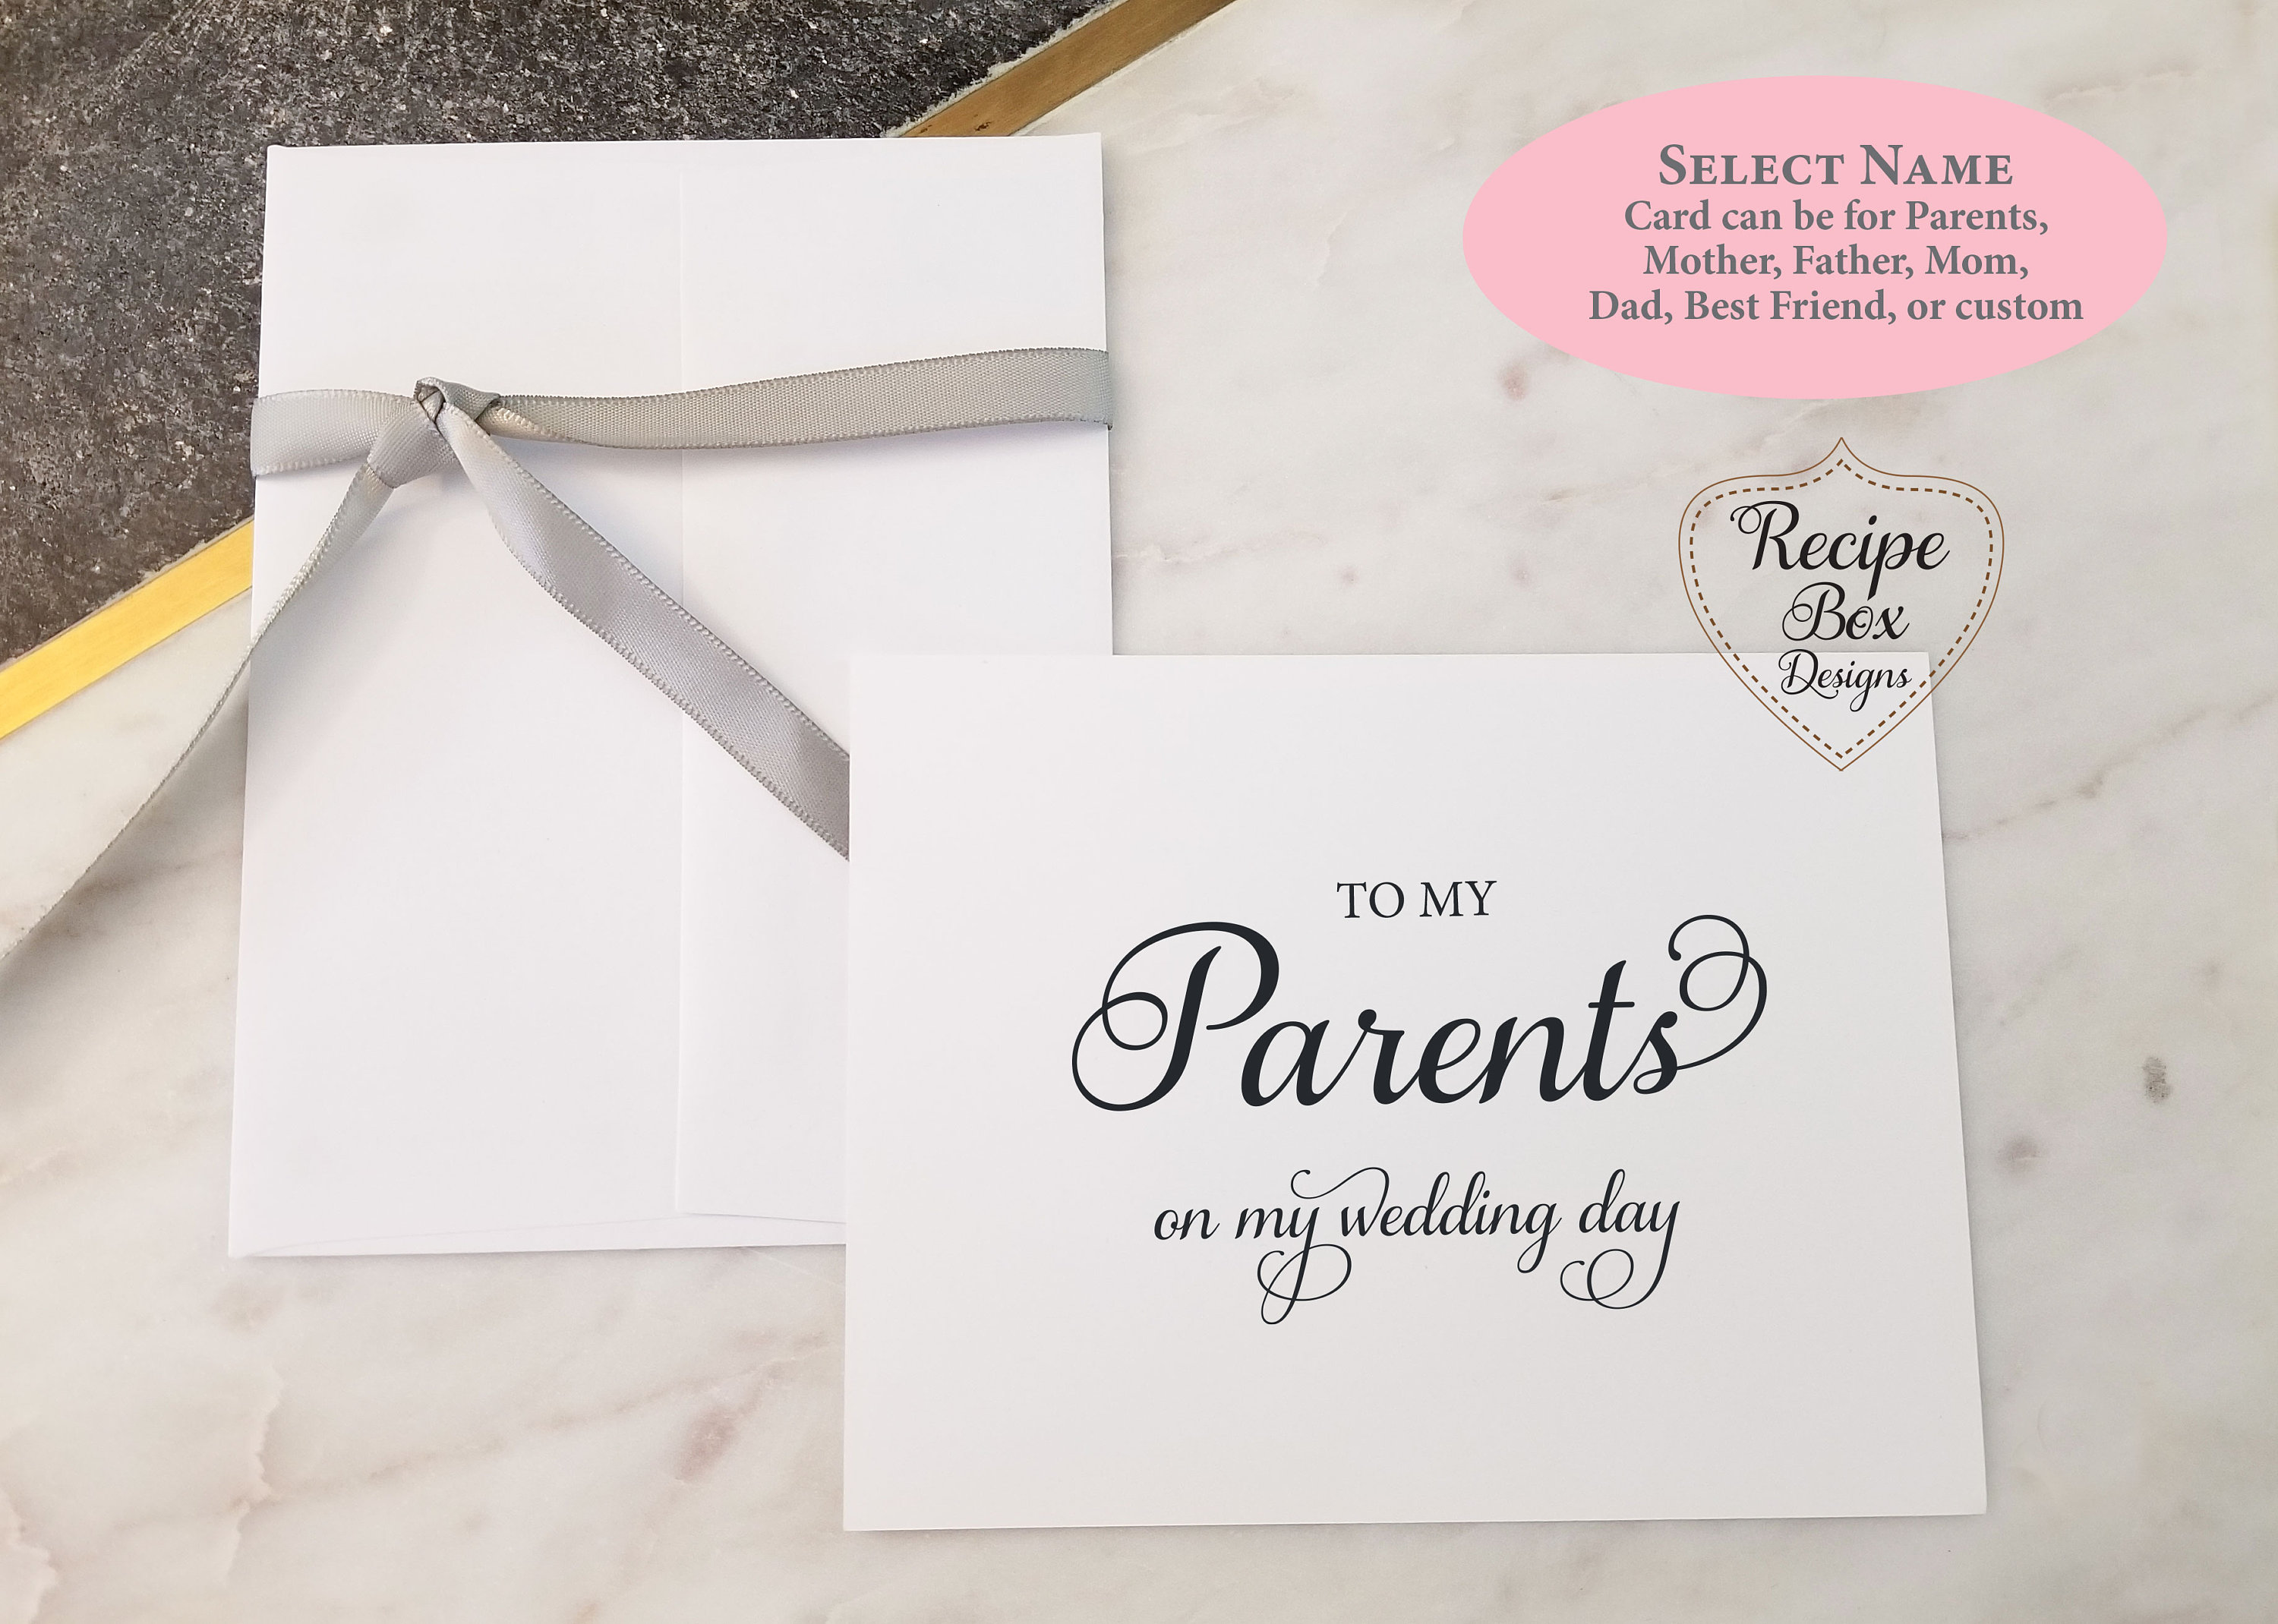 To My Father on My Wedding Day Card TO MY PARENTS on my Wedding Day Card To My Mother on My Wedding Day Card